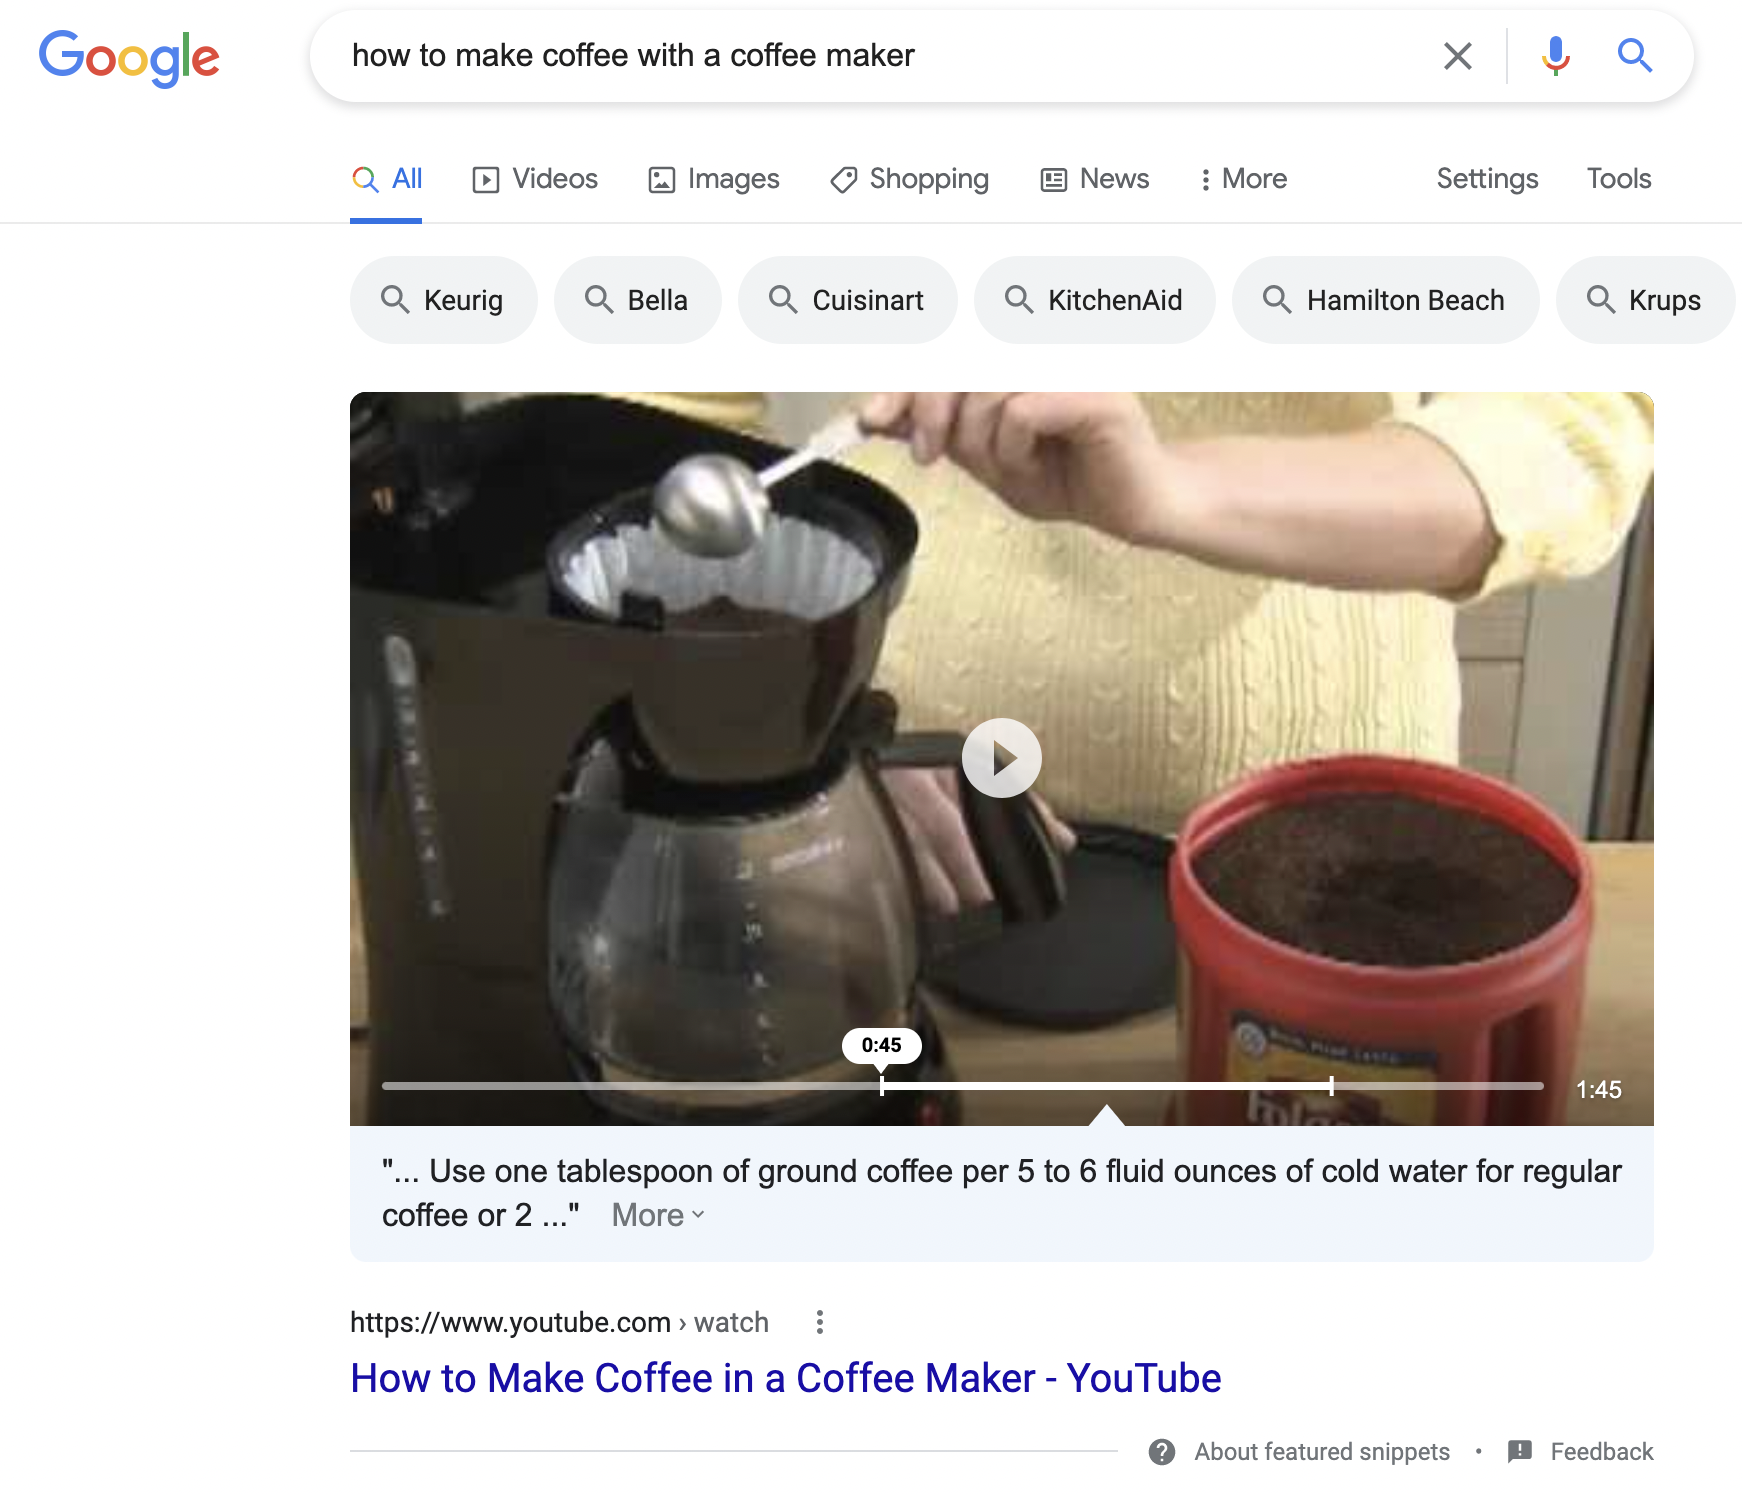 A screenshot of a Featured Snippet Video on how to make coffee with a coffee maker